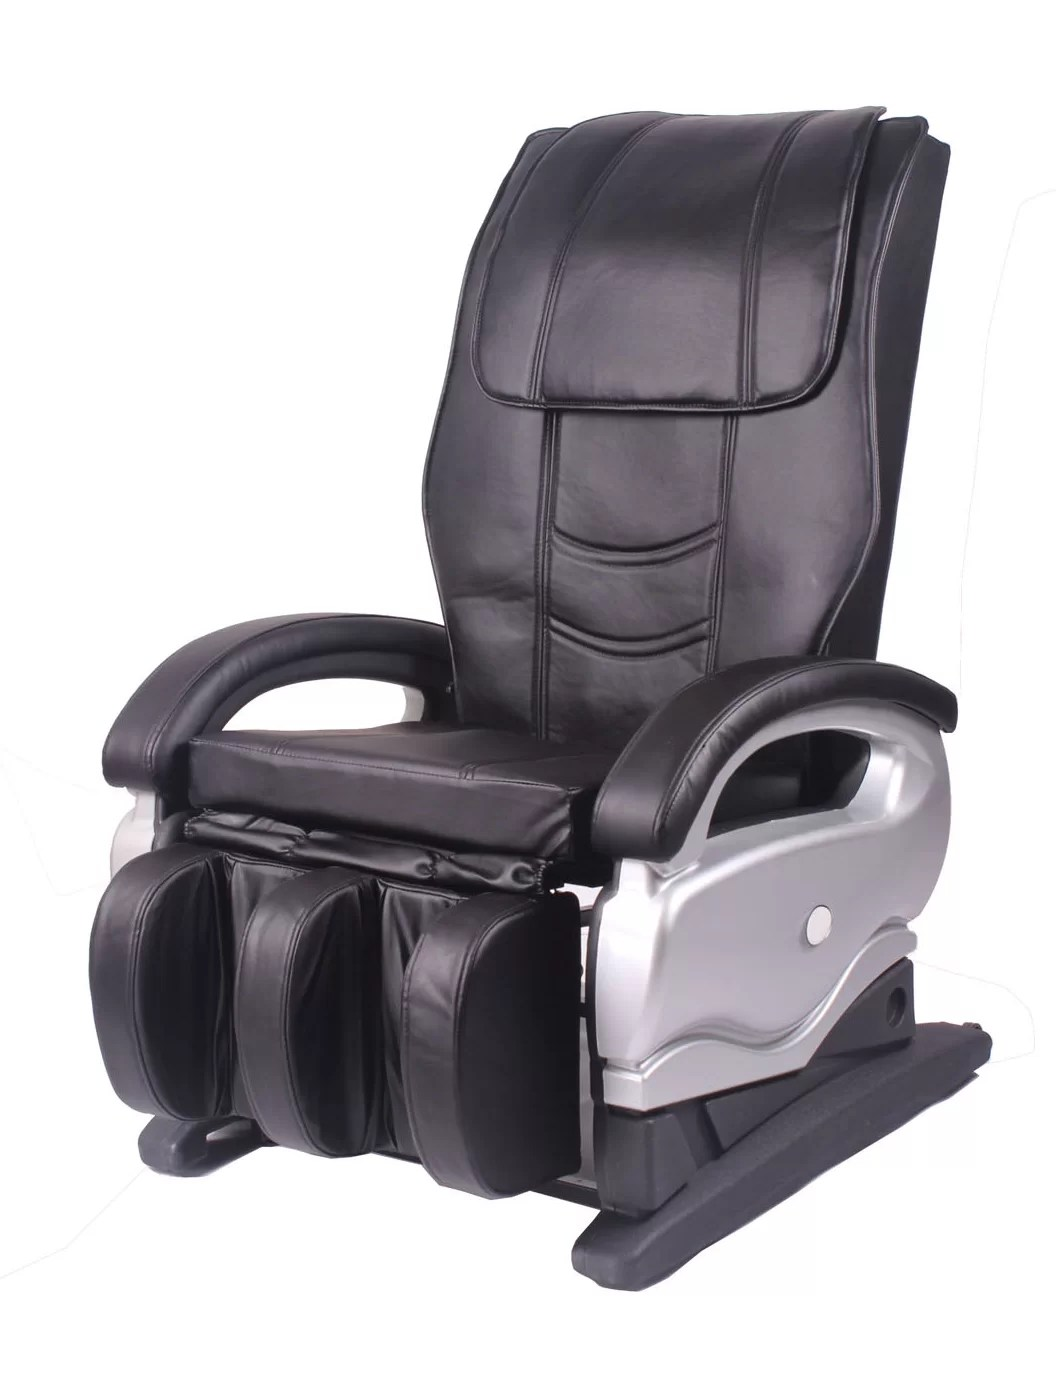 Electric Reclining Chair Newacme Llc Mcombo Leather Electric Reclining Massage